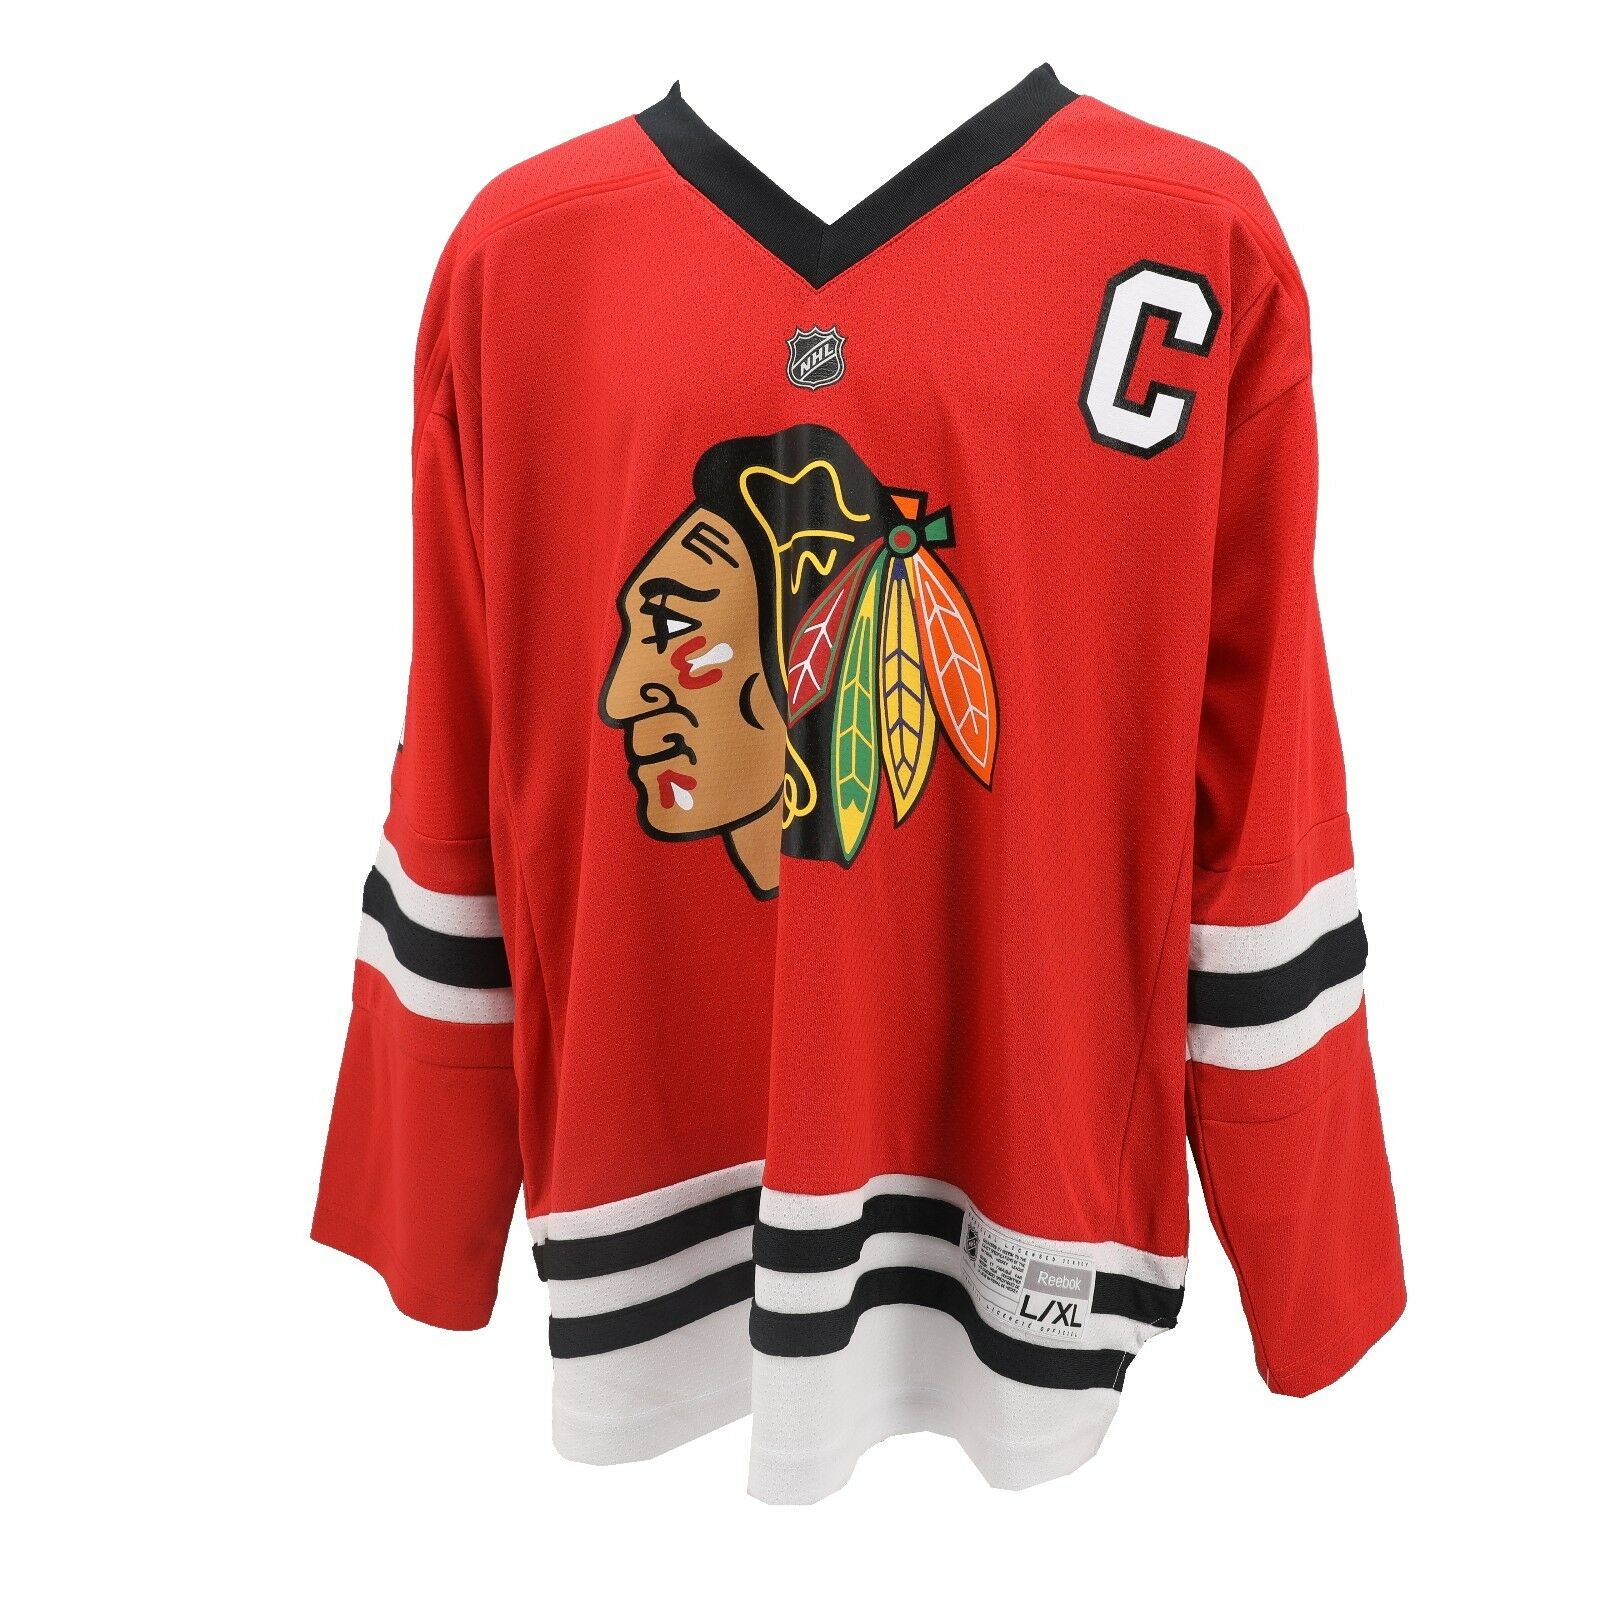 aa7ac96f39a Chicago Blackhawks NHL Reebok Jonathan Toews Kids Youth Size Jersey New Tags